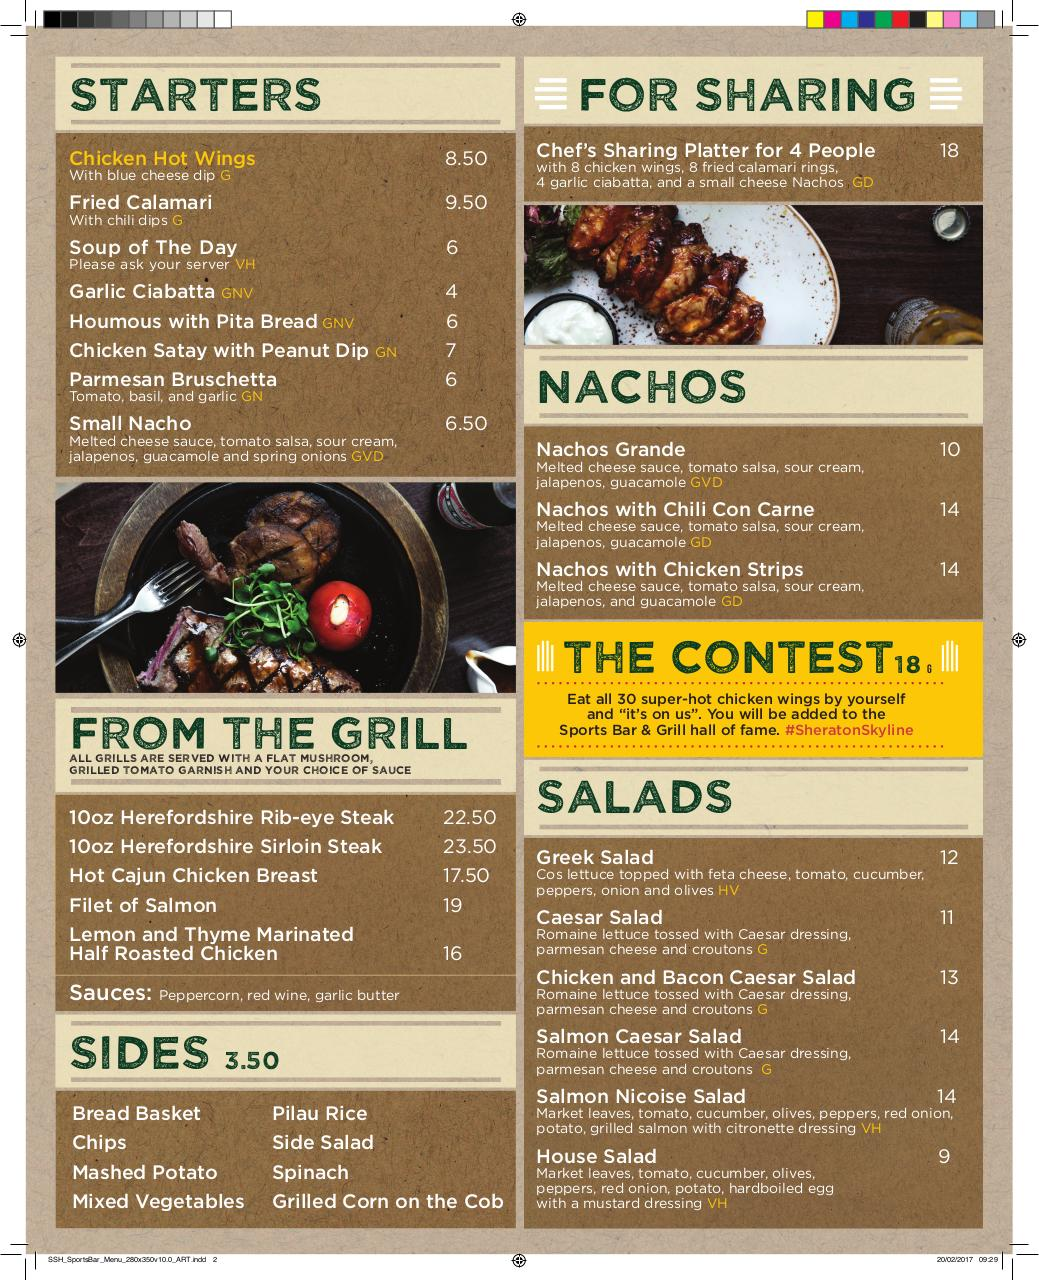 SSH_SportsBar_Menu_280x350v10.0_ART - Copy.pdf - page 2/4